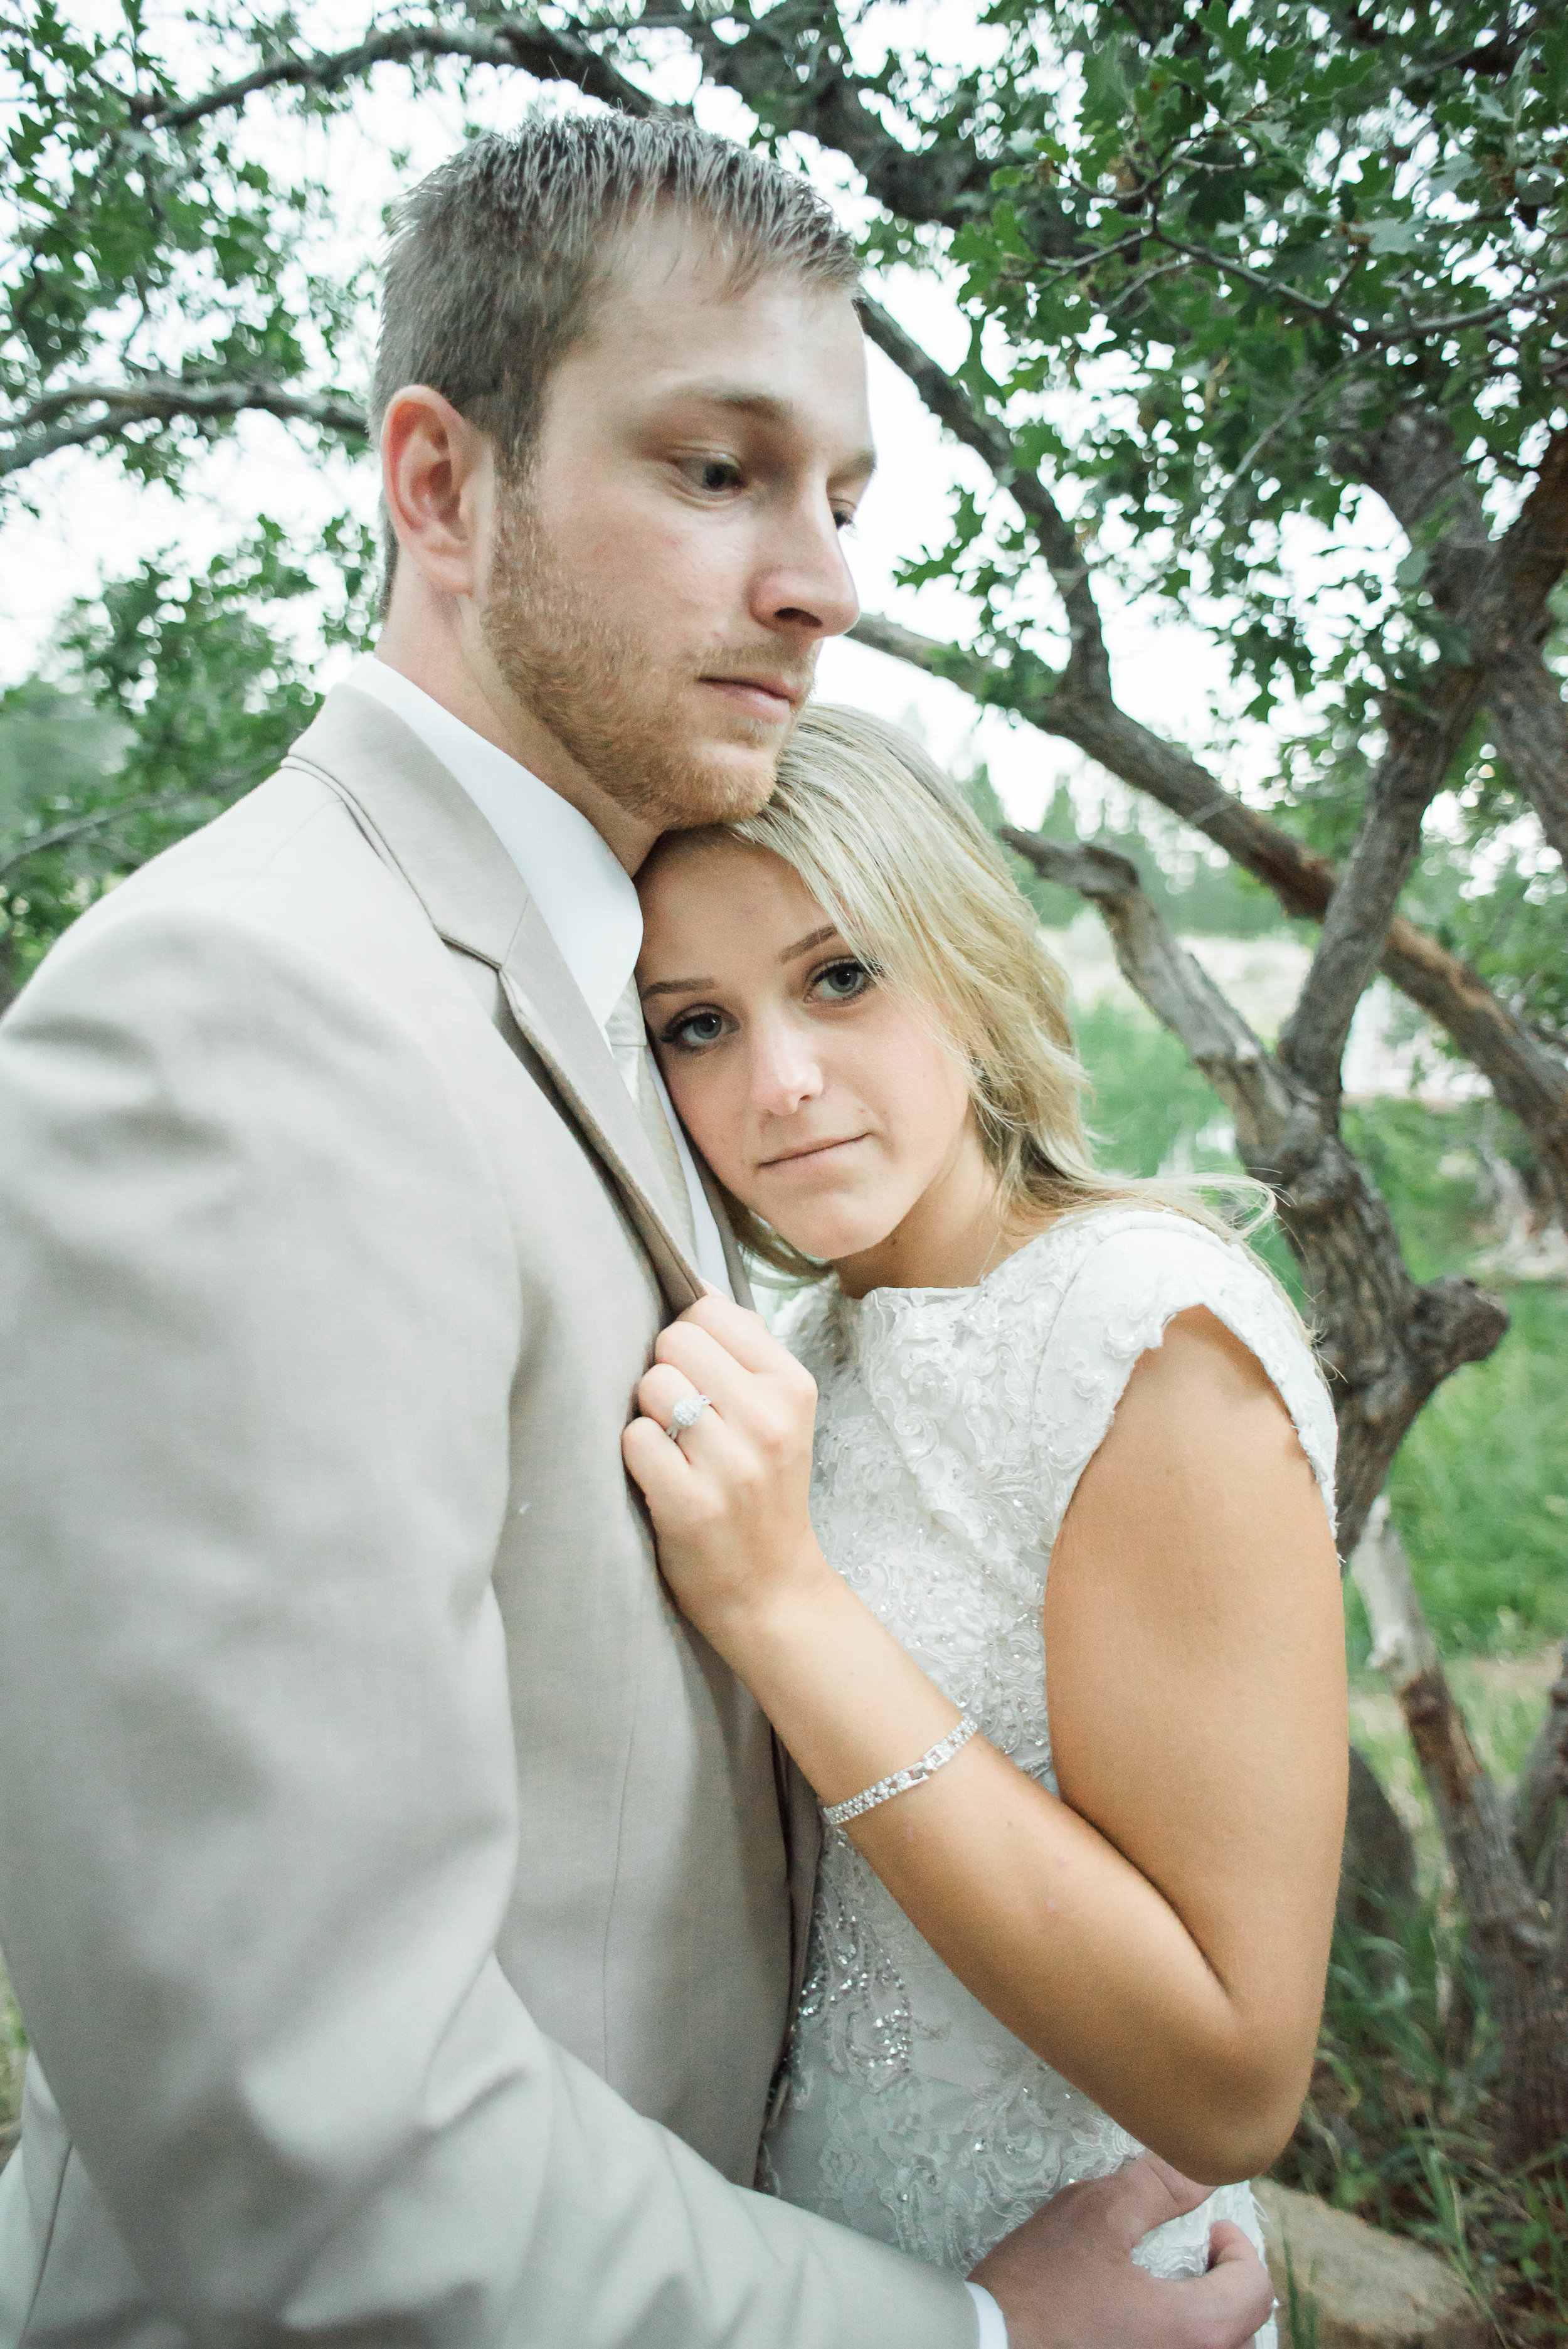 DANIEL+LACI-Sadie_Banks_Photography-78.jpg